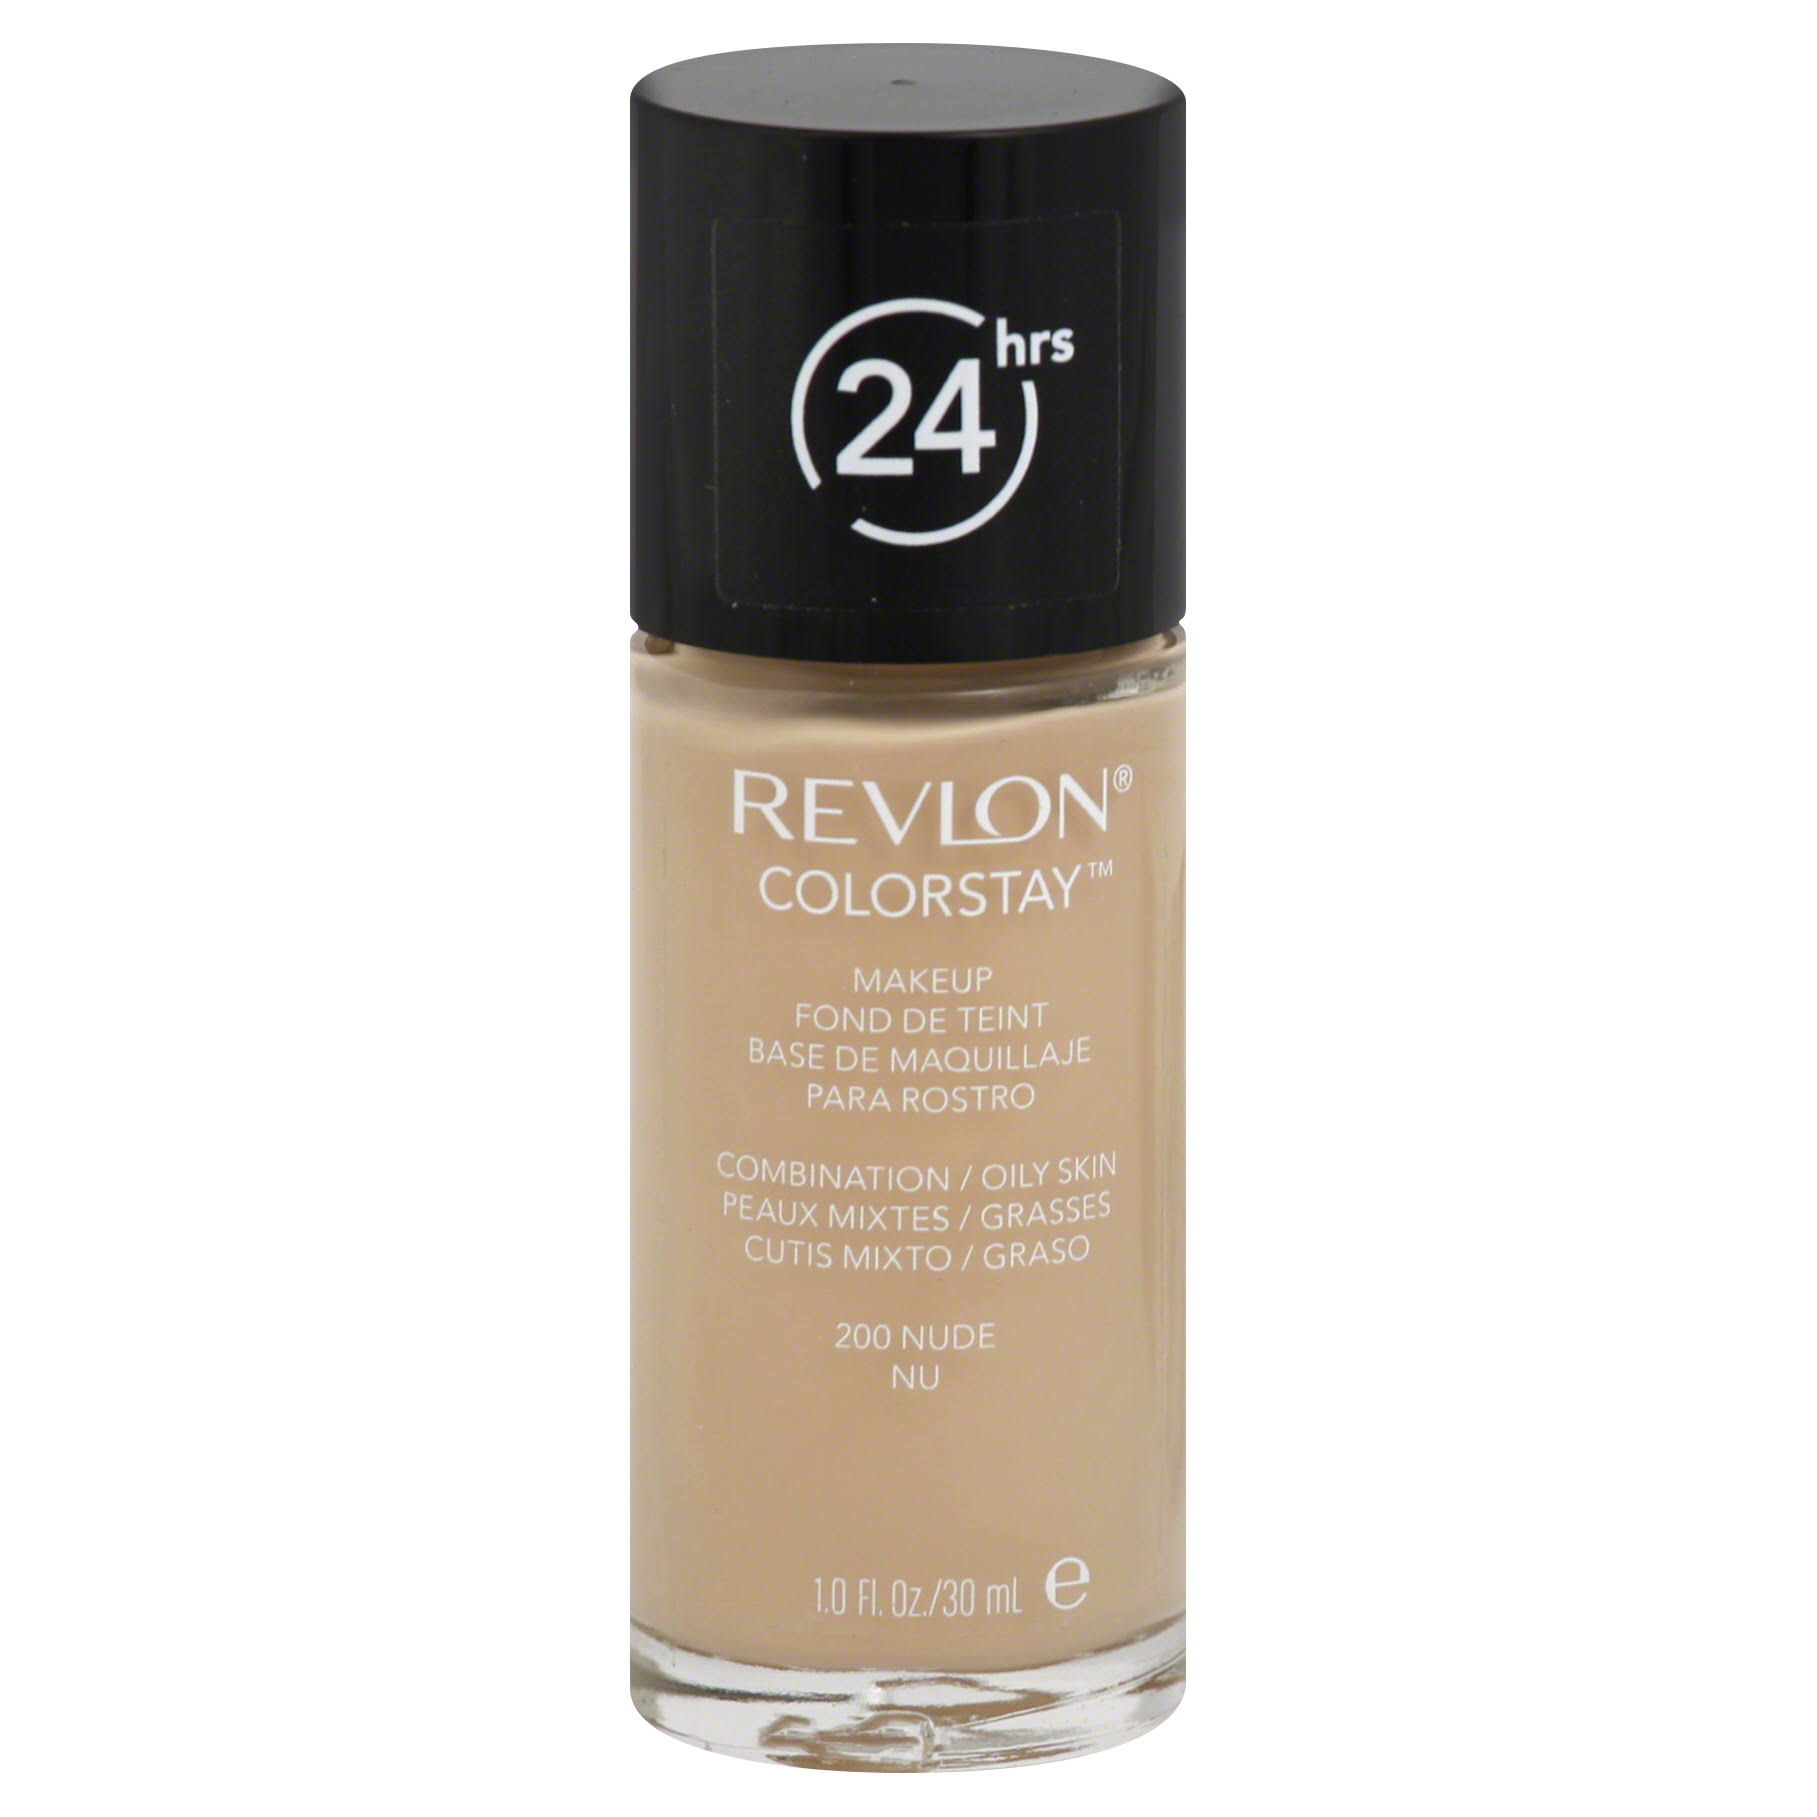 Revlon Color Stay Makeup for Combination/oily Skin - 200 Nude, 1oz